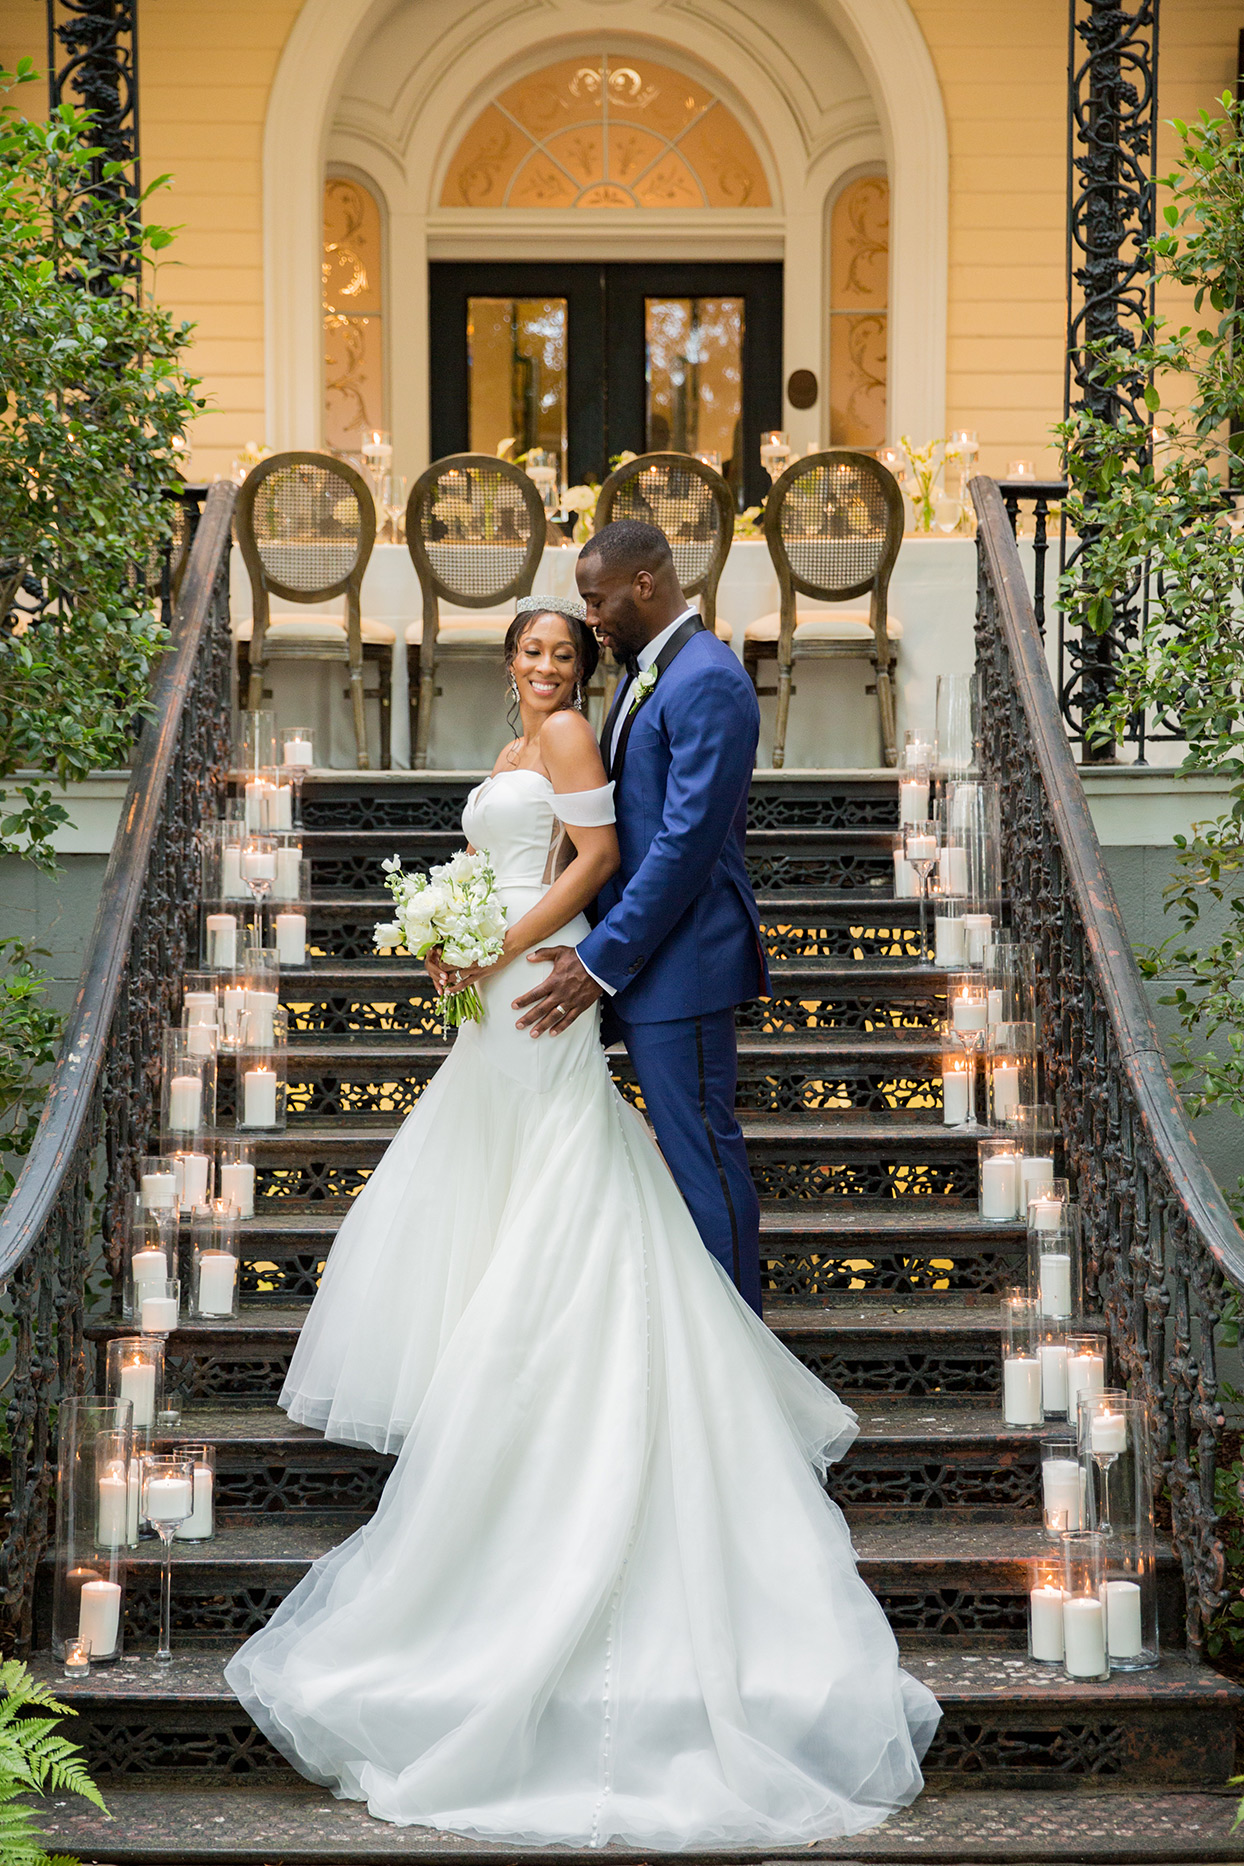 groom standing behind bride on staircase as she looks over her shoulder back at him